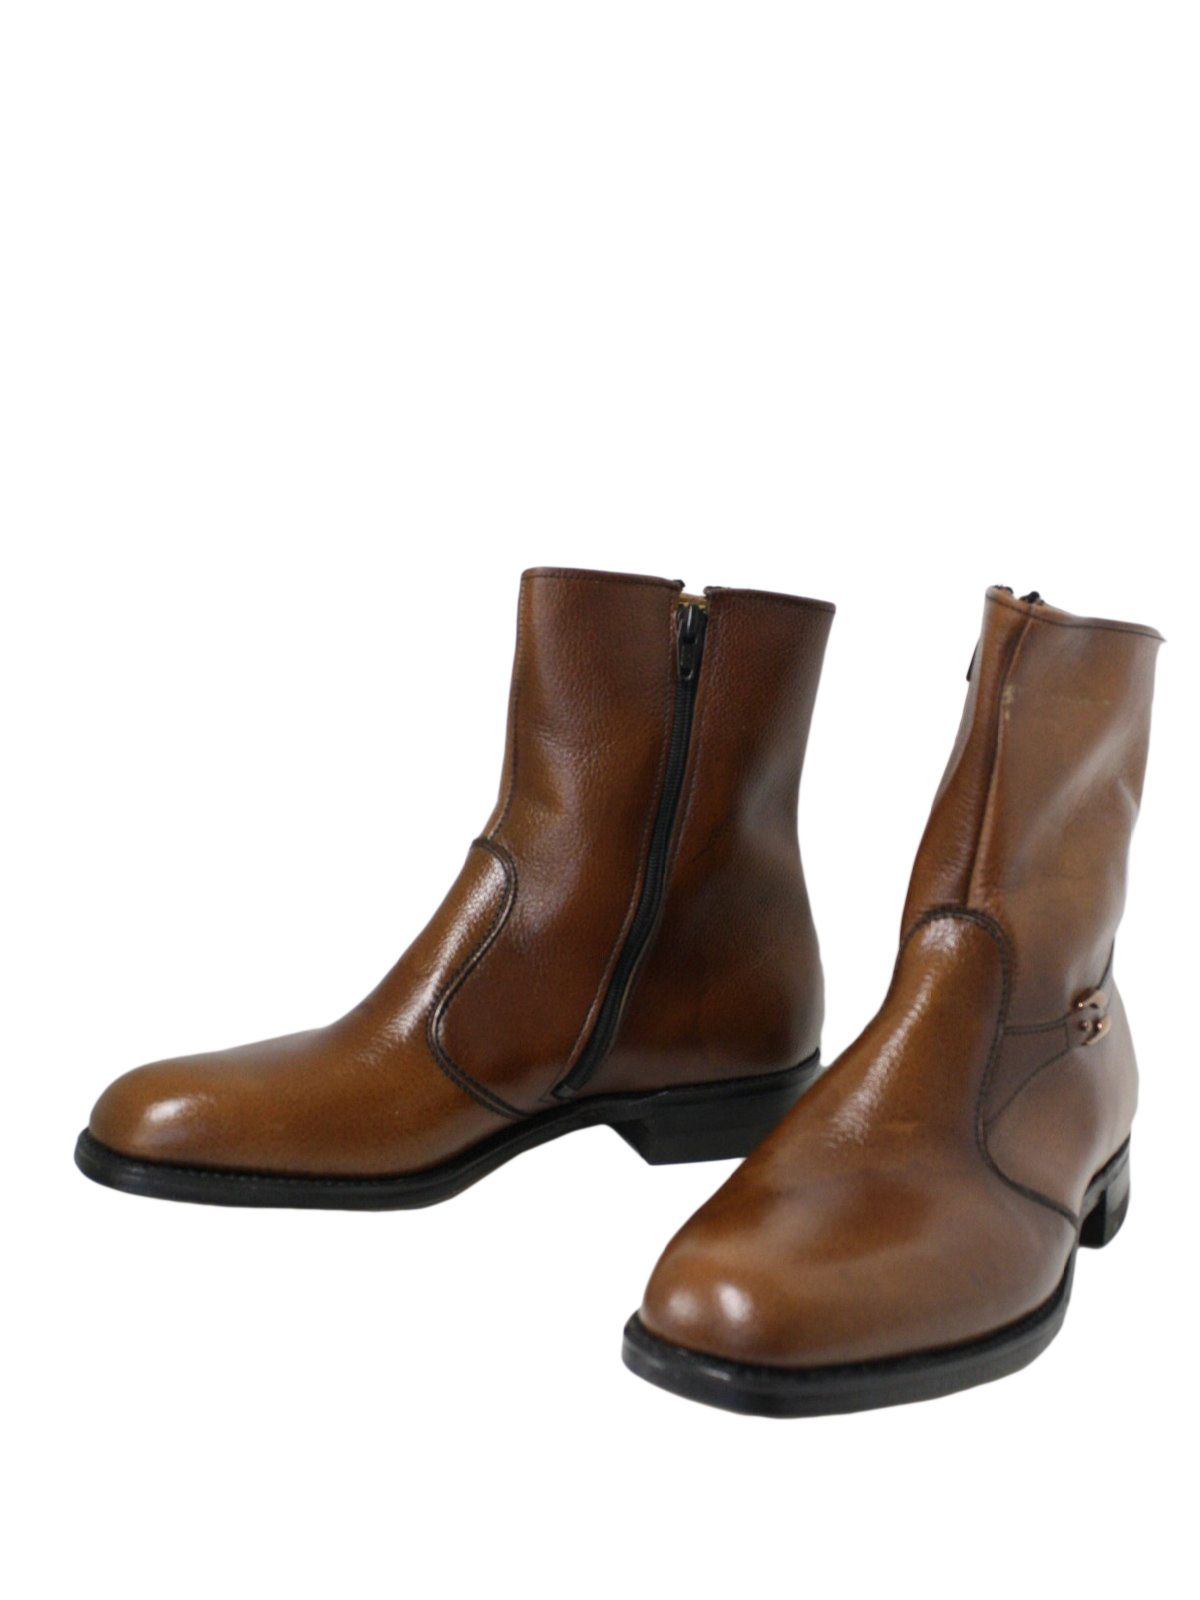 Mens Brown Leather Ankle Boots - Cr Boot